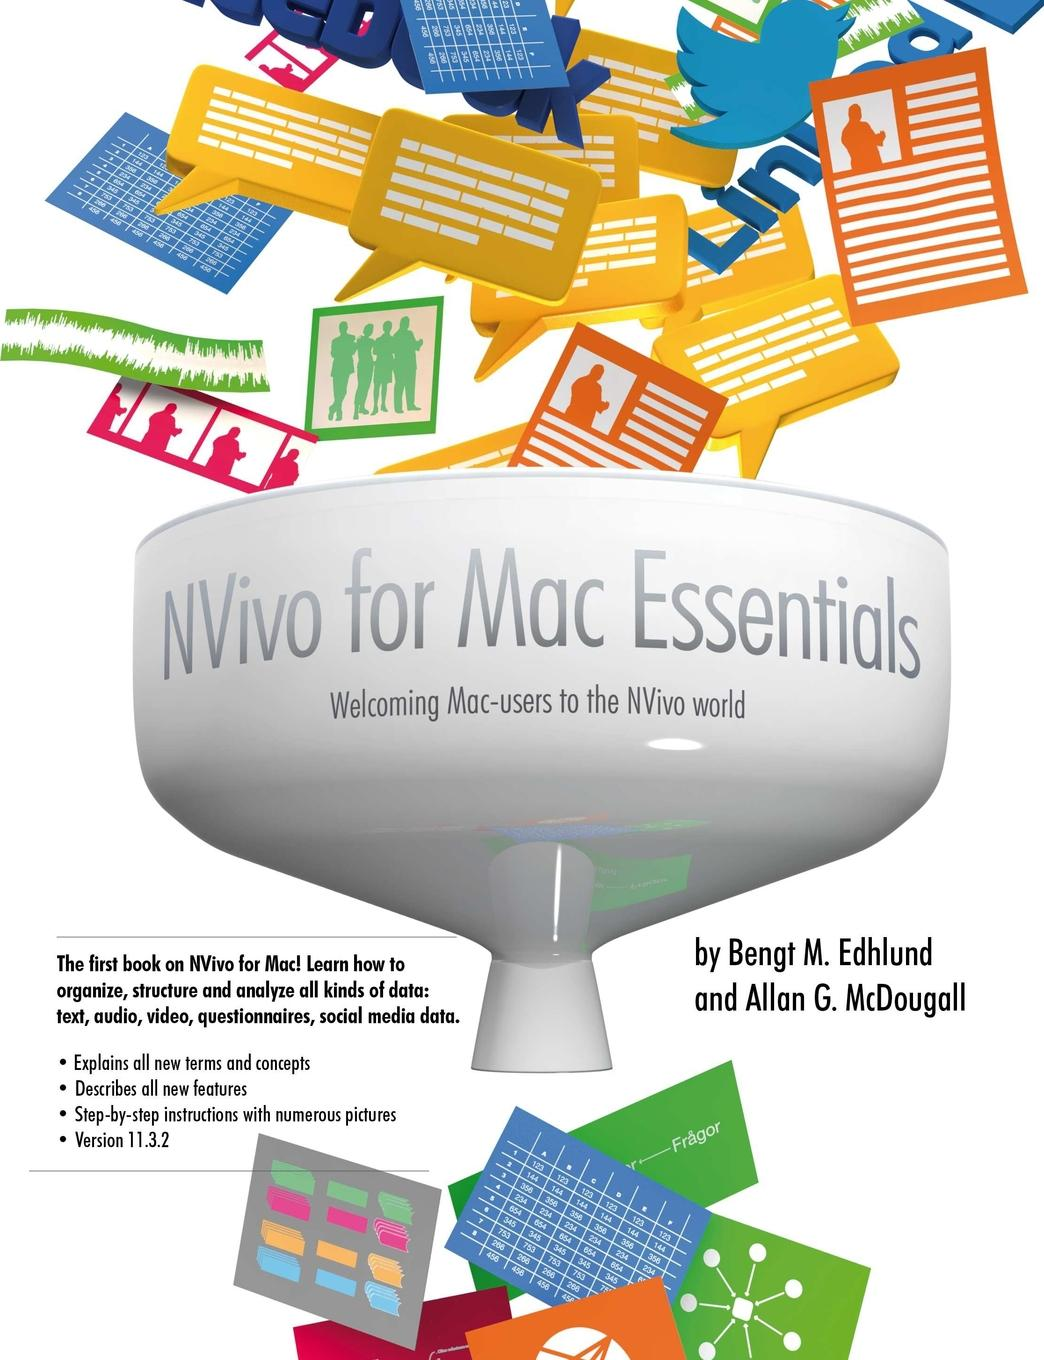 Bengt Edhlund, Allan McDougall NVivo for Mac Essentials realand tcp ip biometric fingerprint and rfid card time attendance for 2000 users with free different language software and sdk